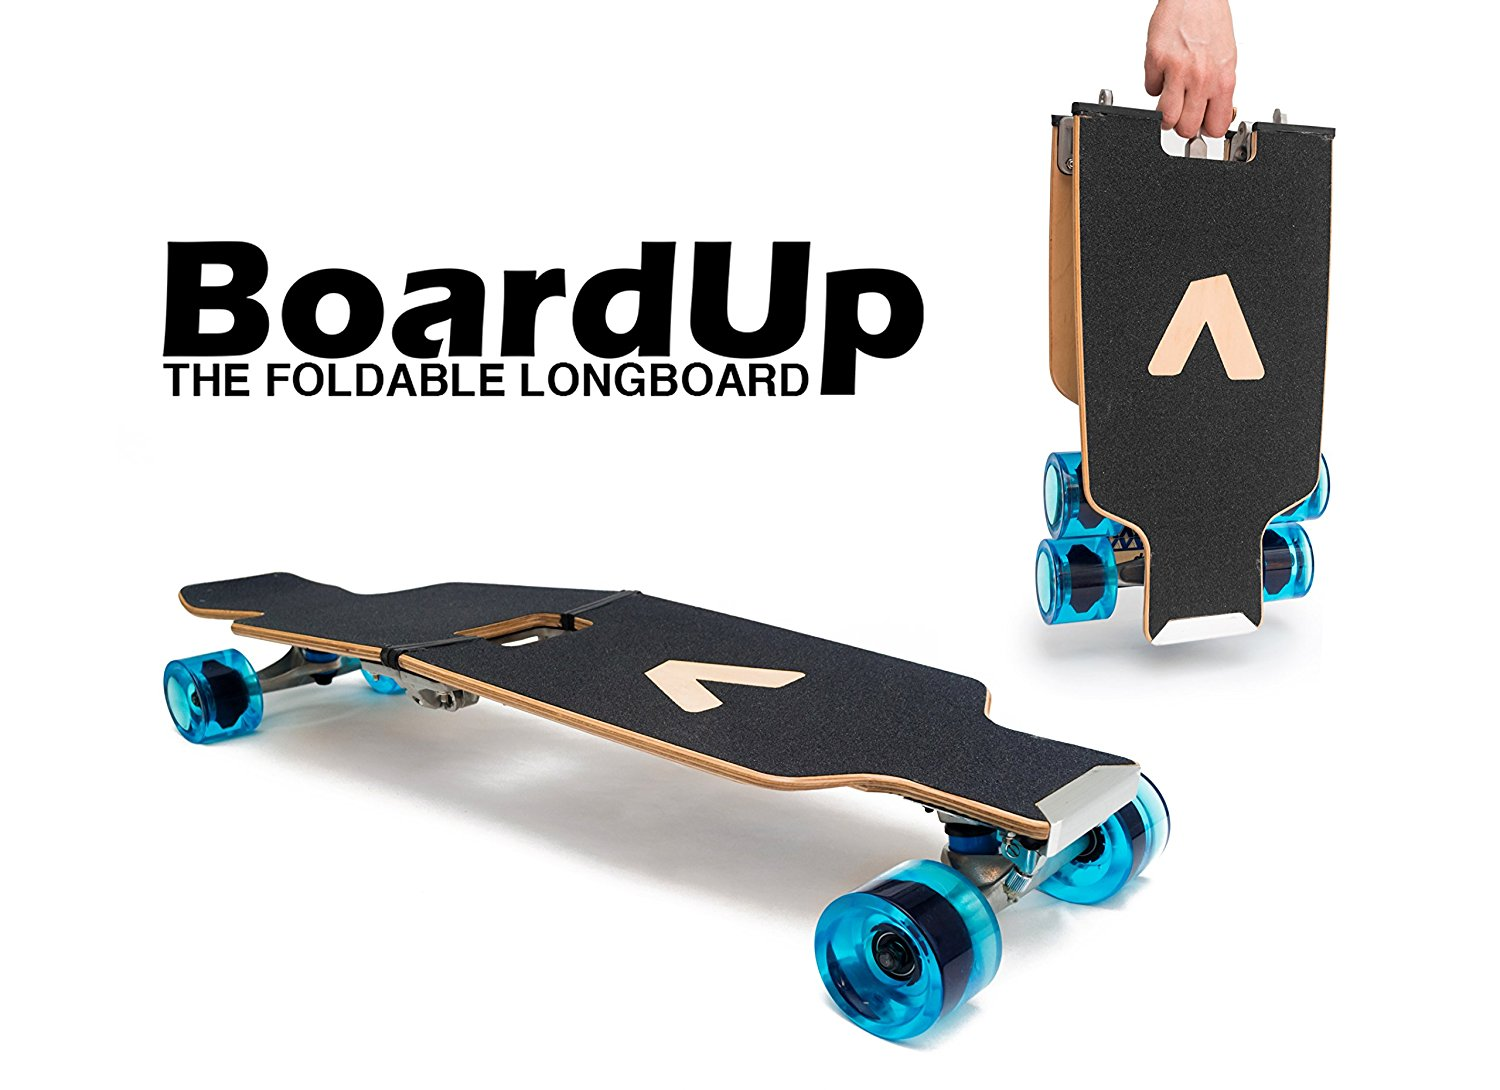 BoardUp: The longboard for travel